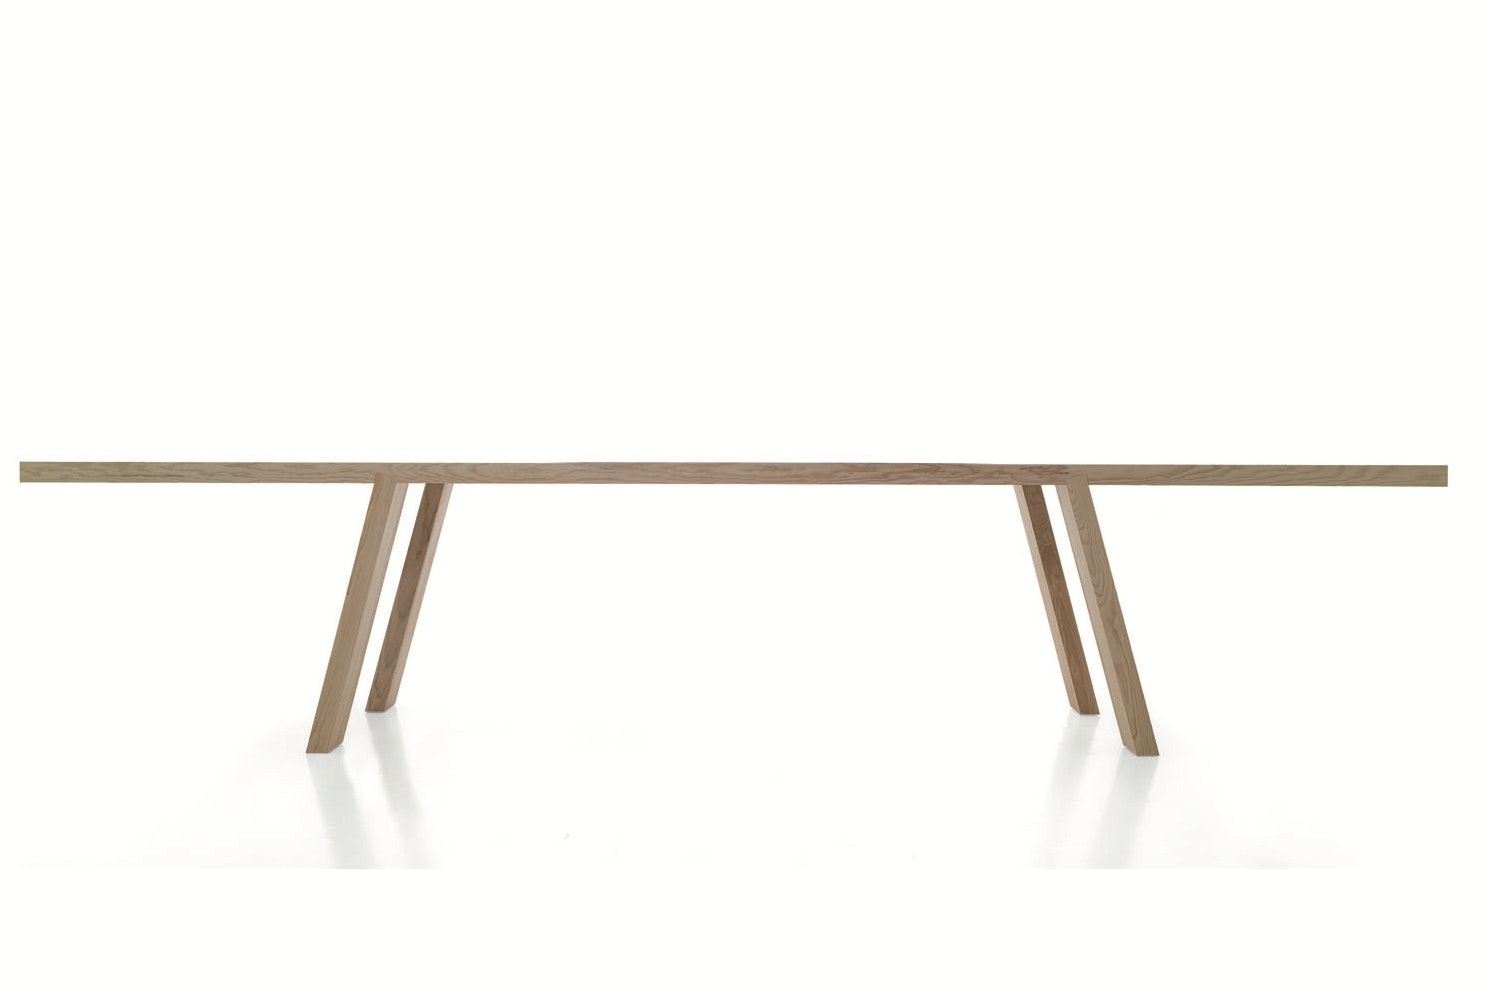 Minimo Light Table by Piero Lissoni for Porro